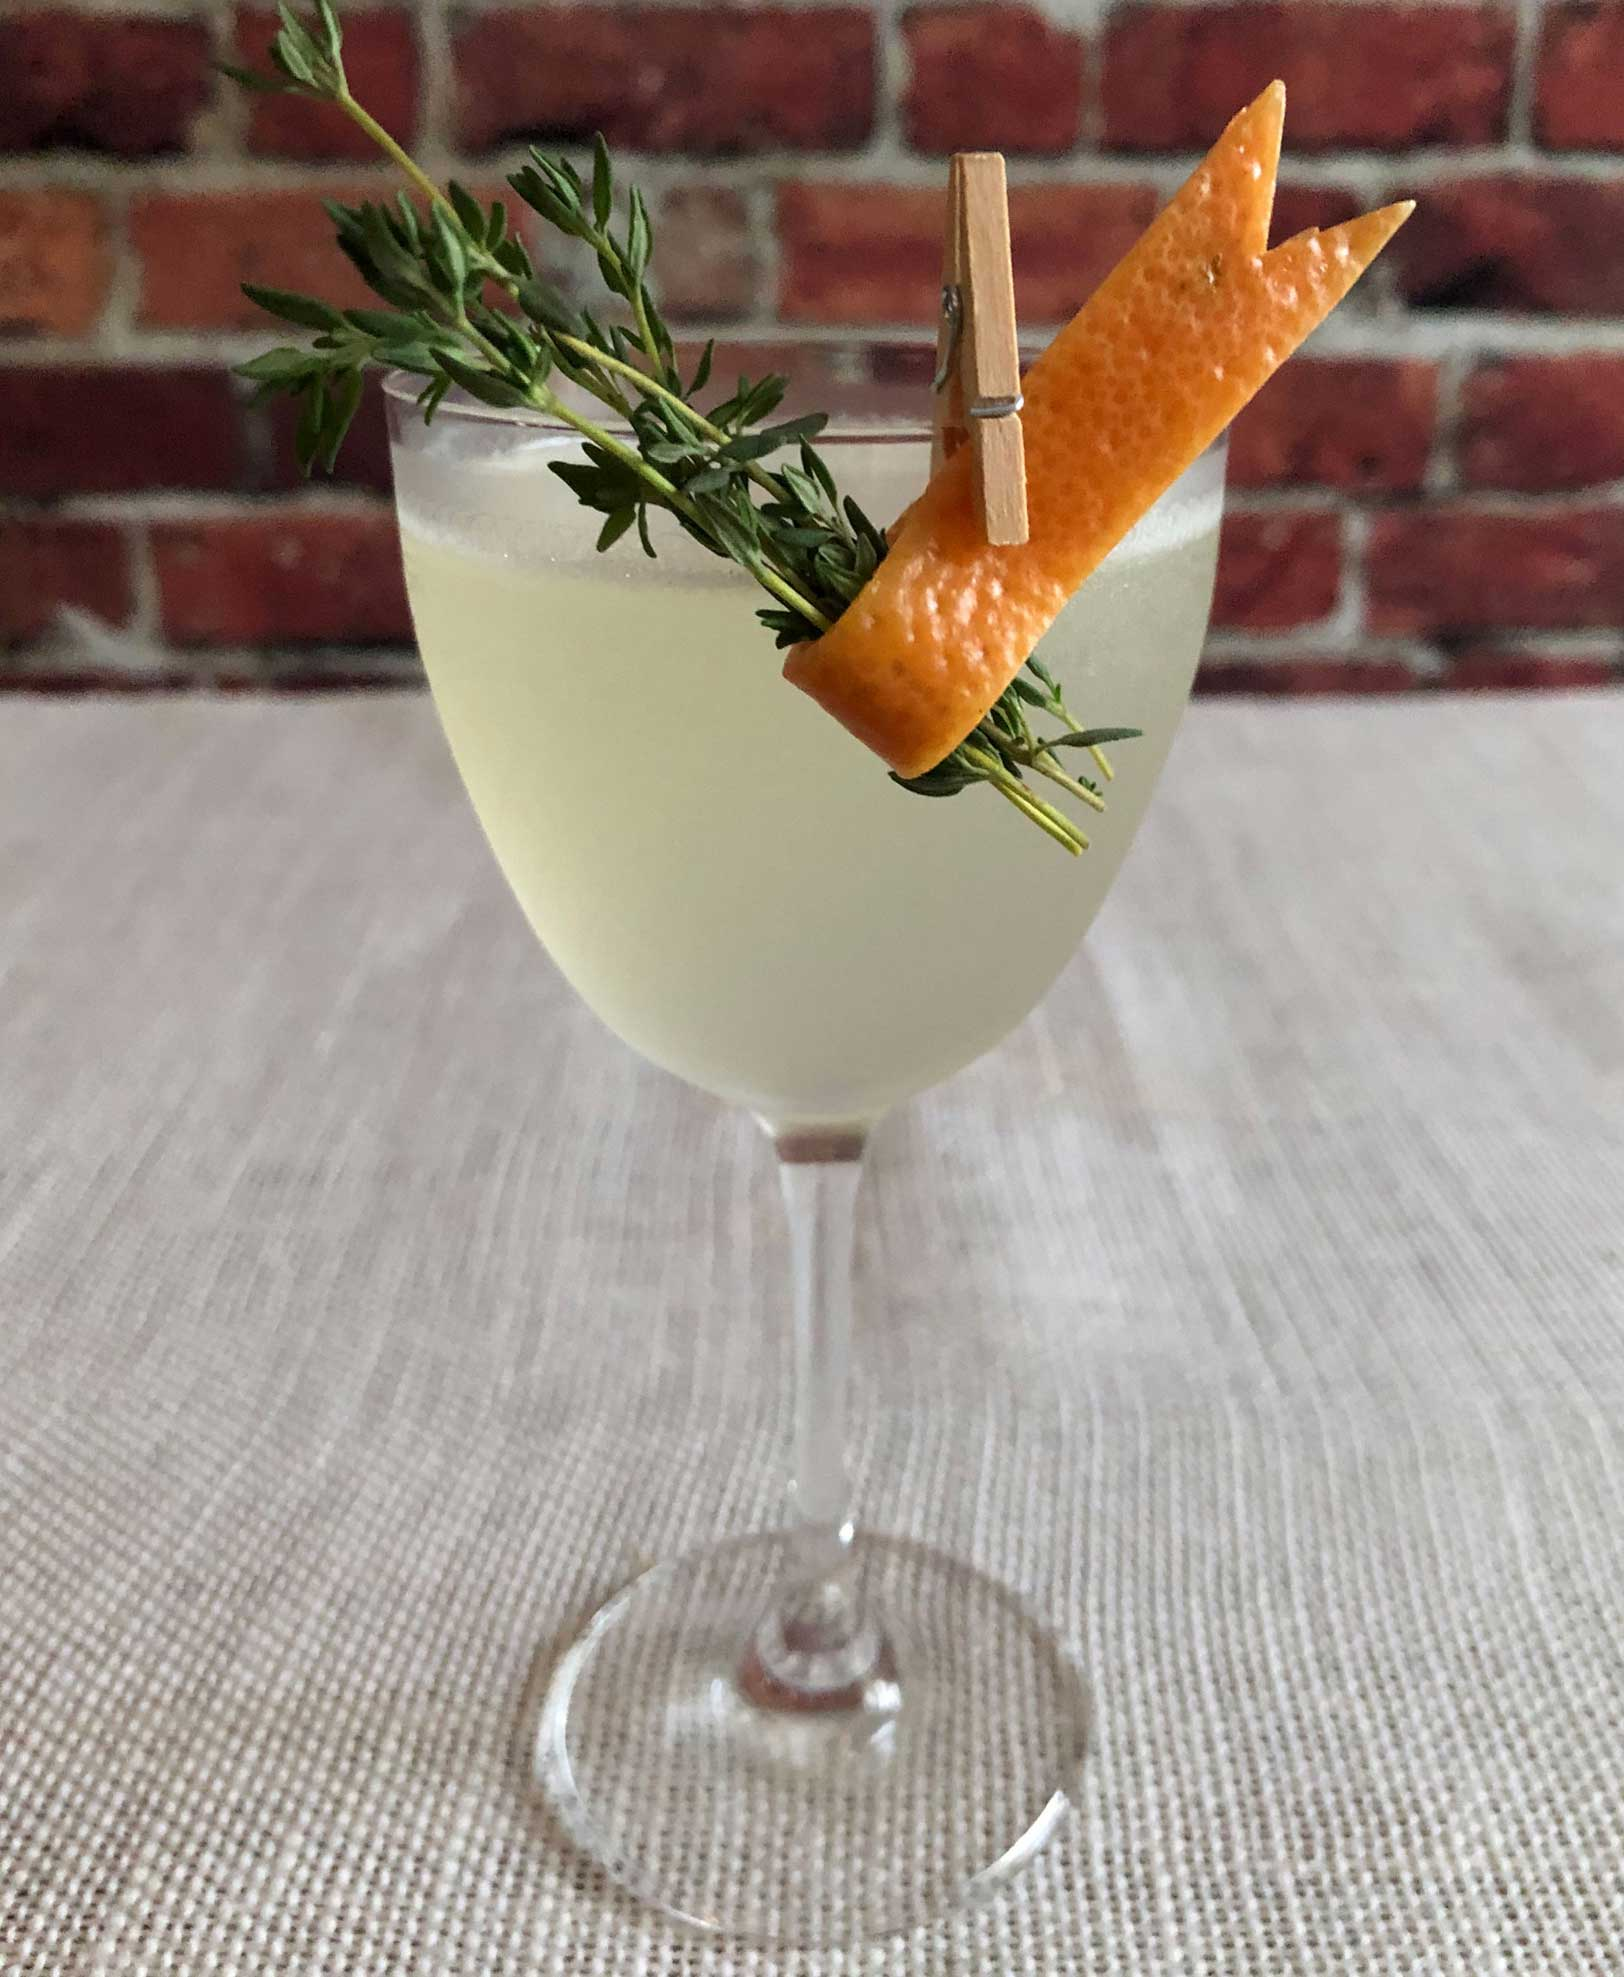 An example of the Hemingway in Europe, the mixed drink (cocktail), by Patrick Williams, Punch Bowl Social, Denver, featuring Batavia Arrack van Oosten, grapefruit oleo-saccharum, lime juice, and maraschino liqueur; photo by Lee Edwards